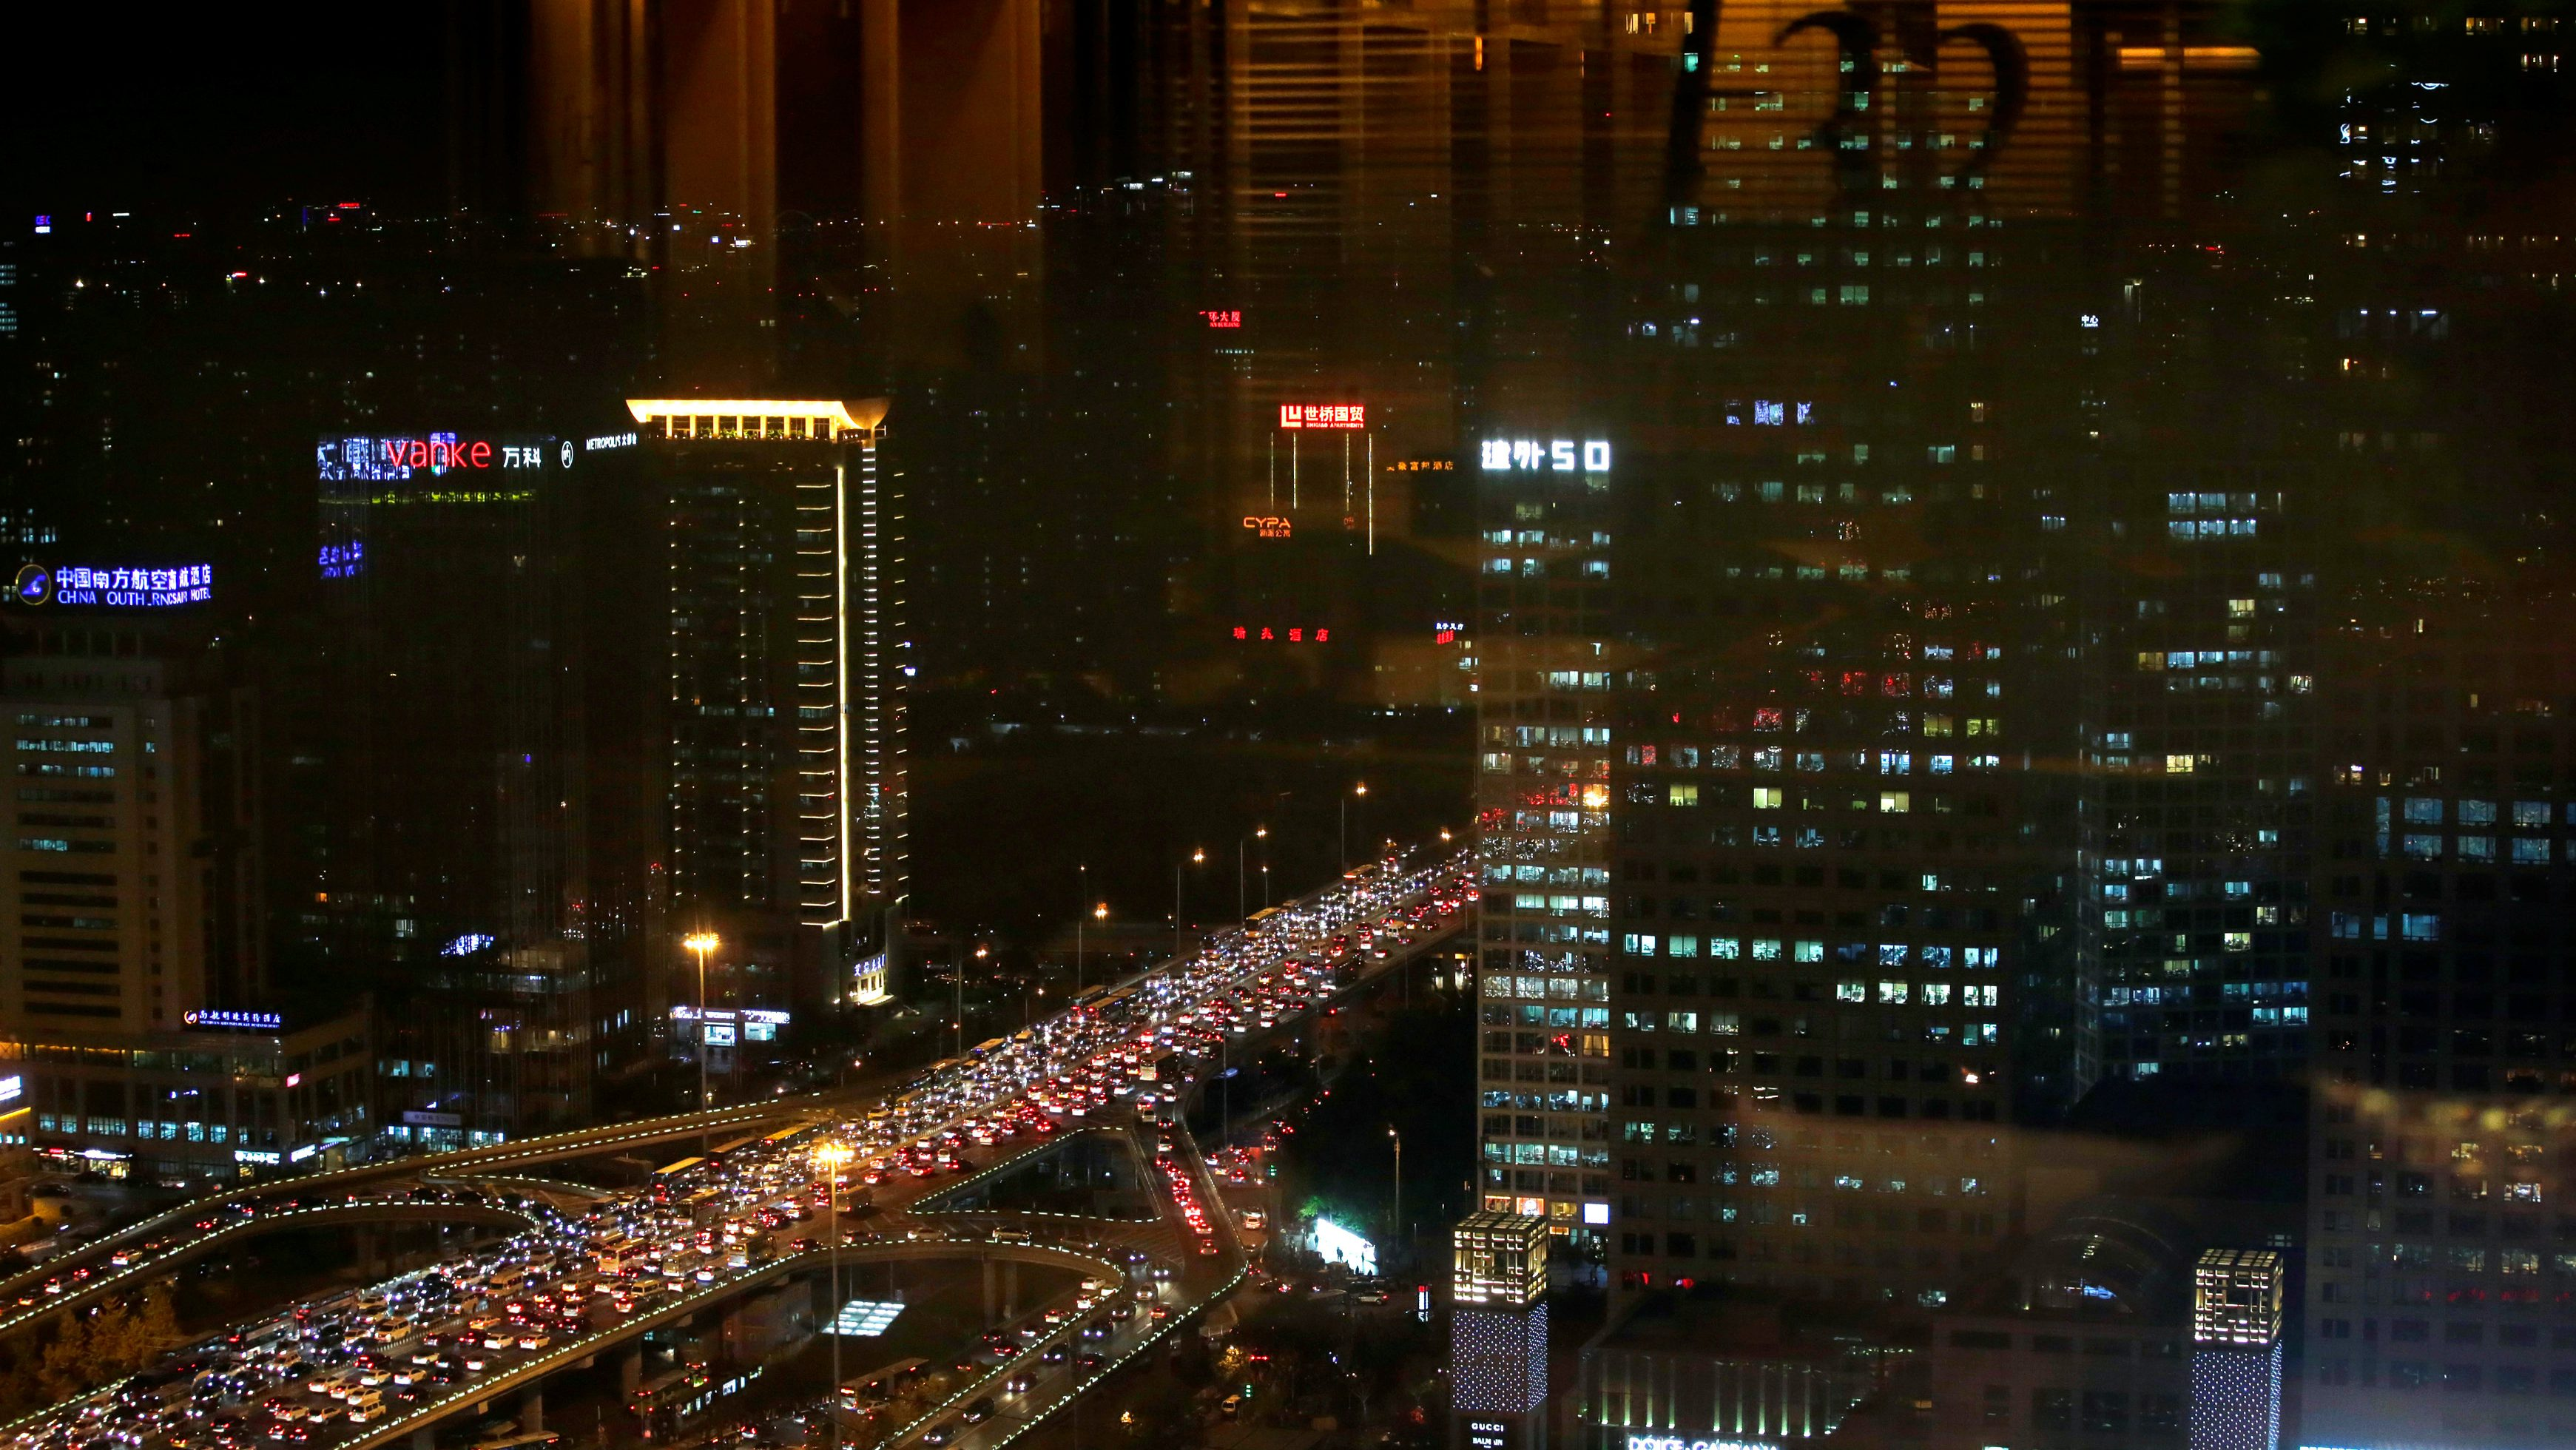 Vehicles are seen through a window as they drive on Guomao Bridge during rush hour in Beijing, China, November 7, 2016. REUTERS/Jason Lee - RTX2SAOY